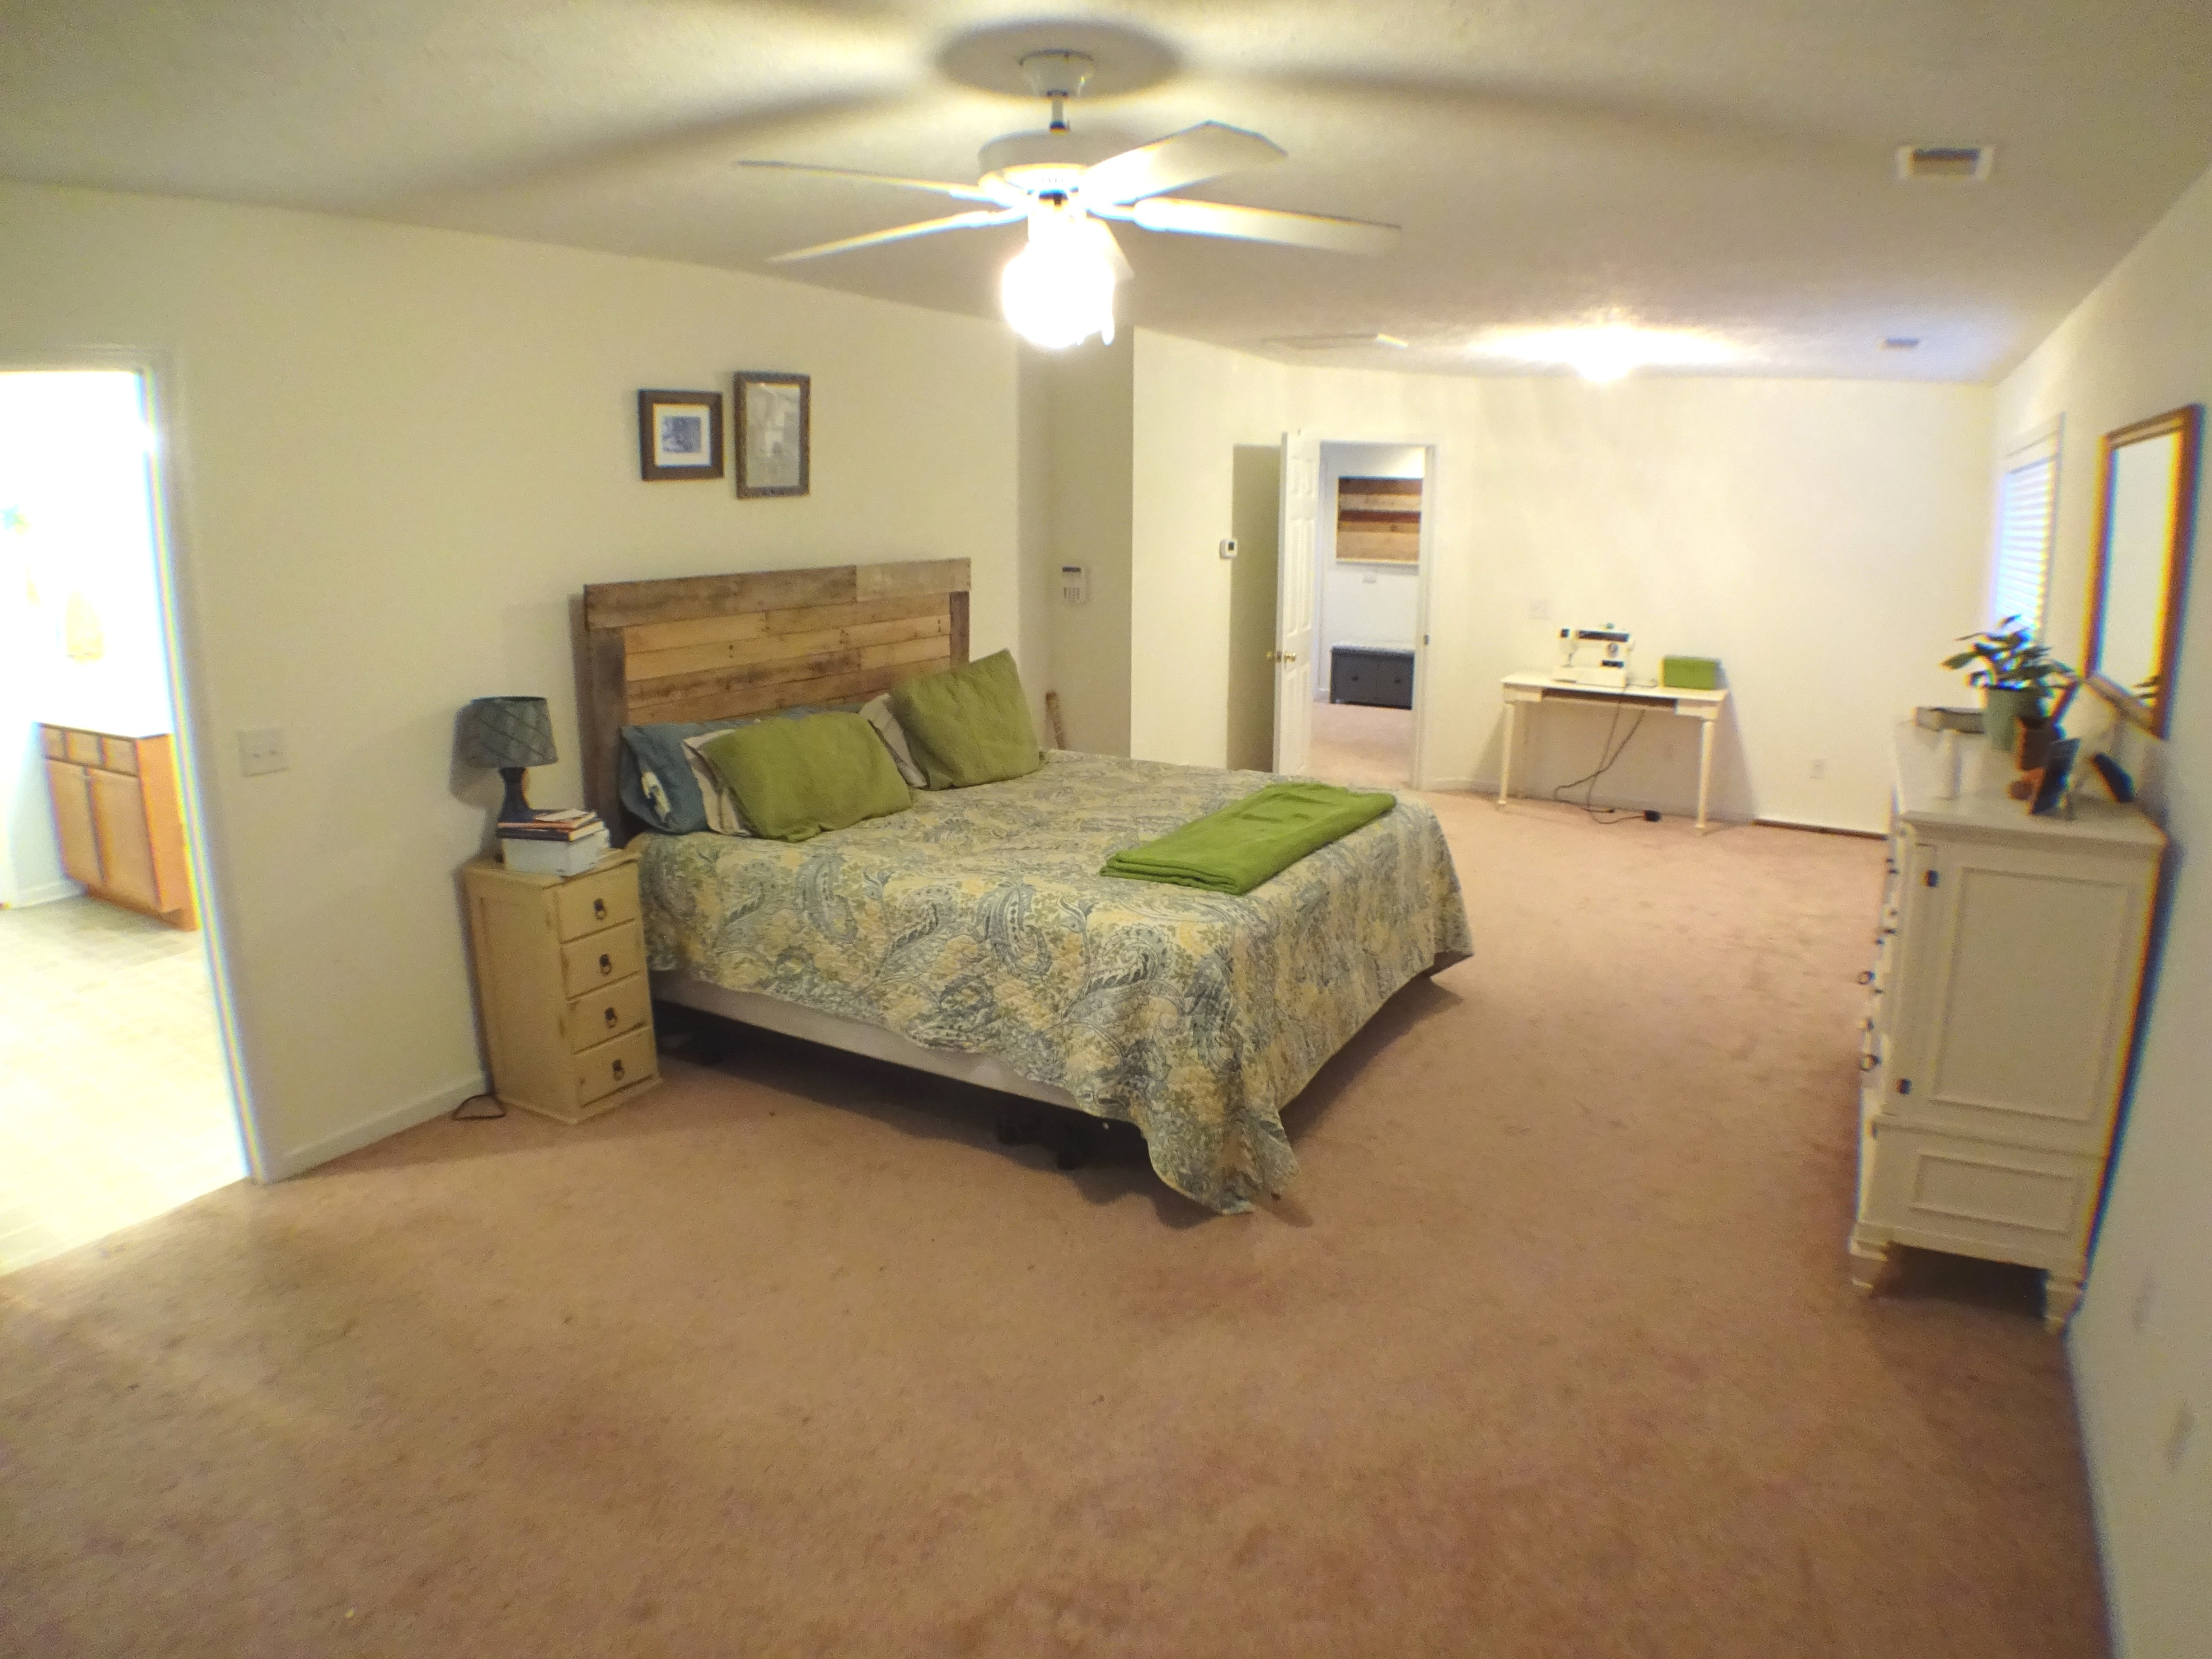 Not available 6 roe deer court blythewood sc 29016 Master bedroom with private garden